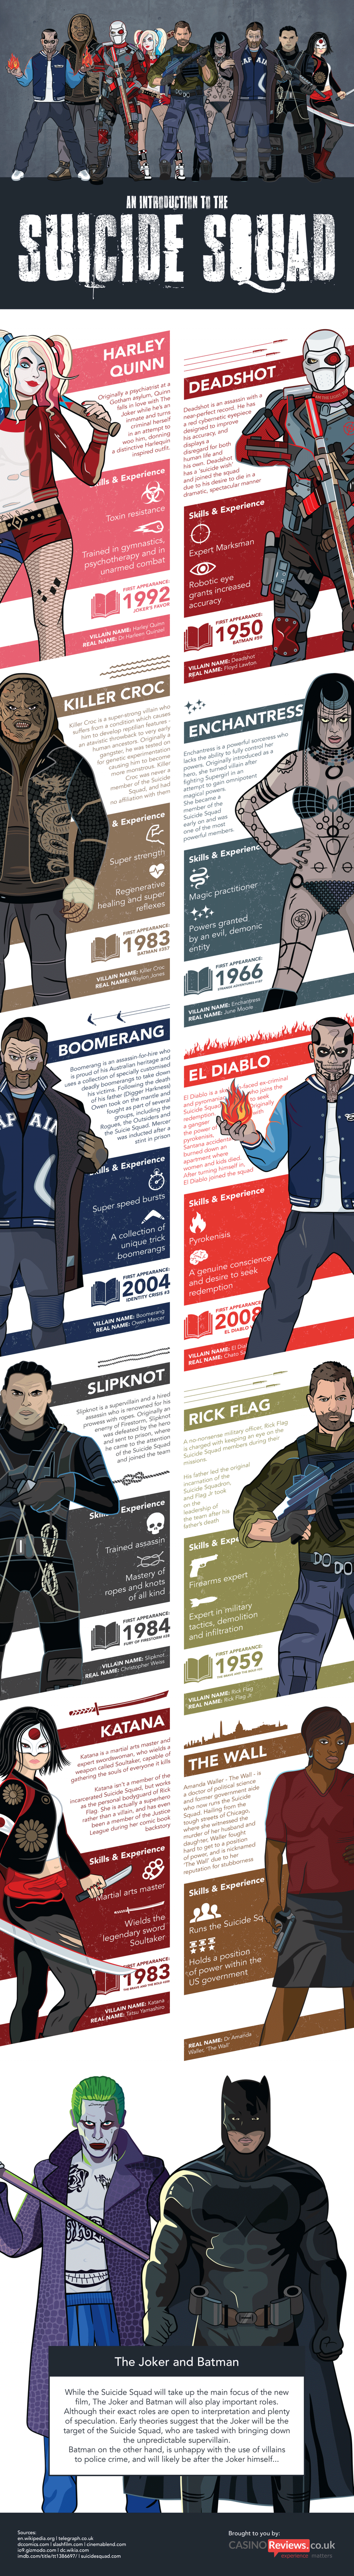 An Introduction to the Suicide Squad Infographic